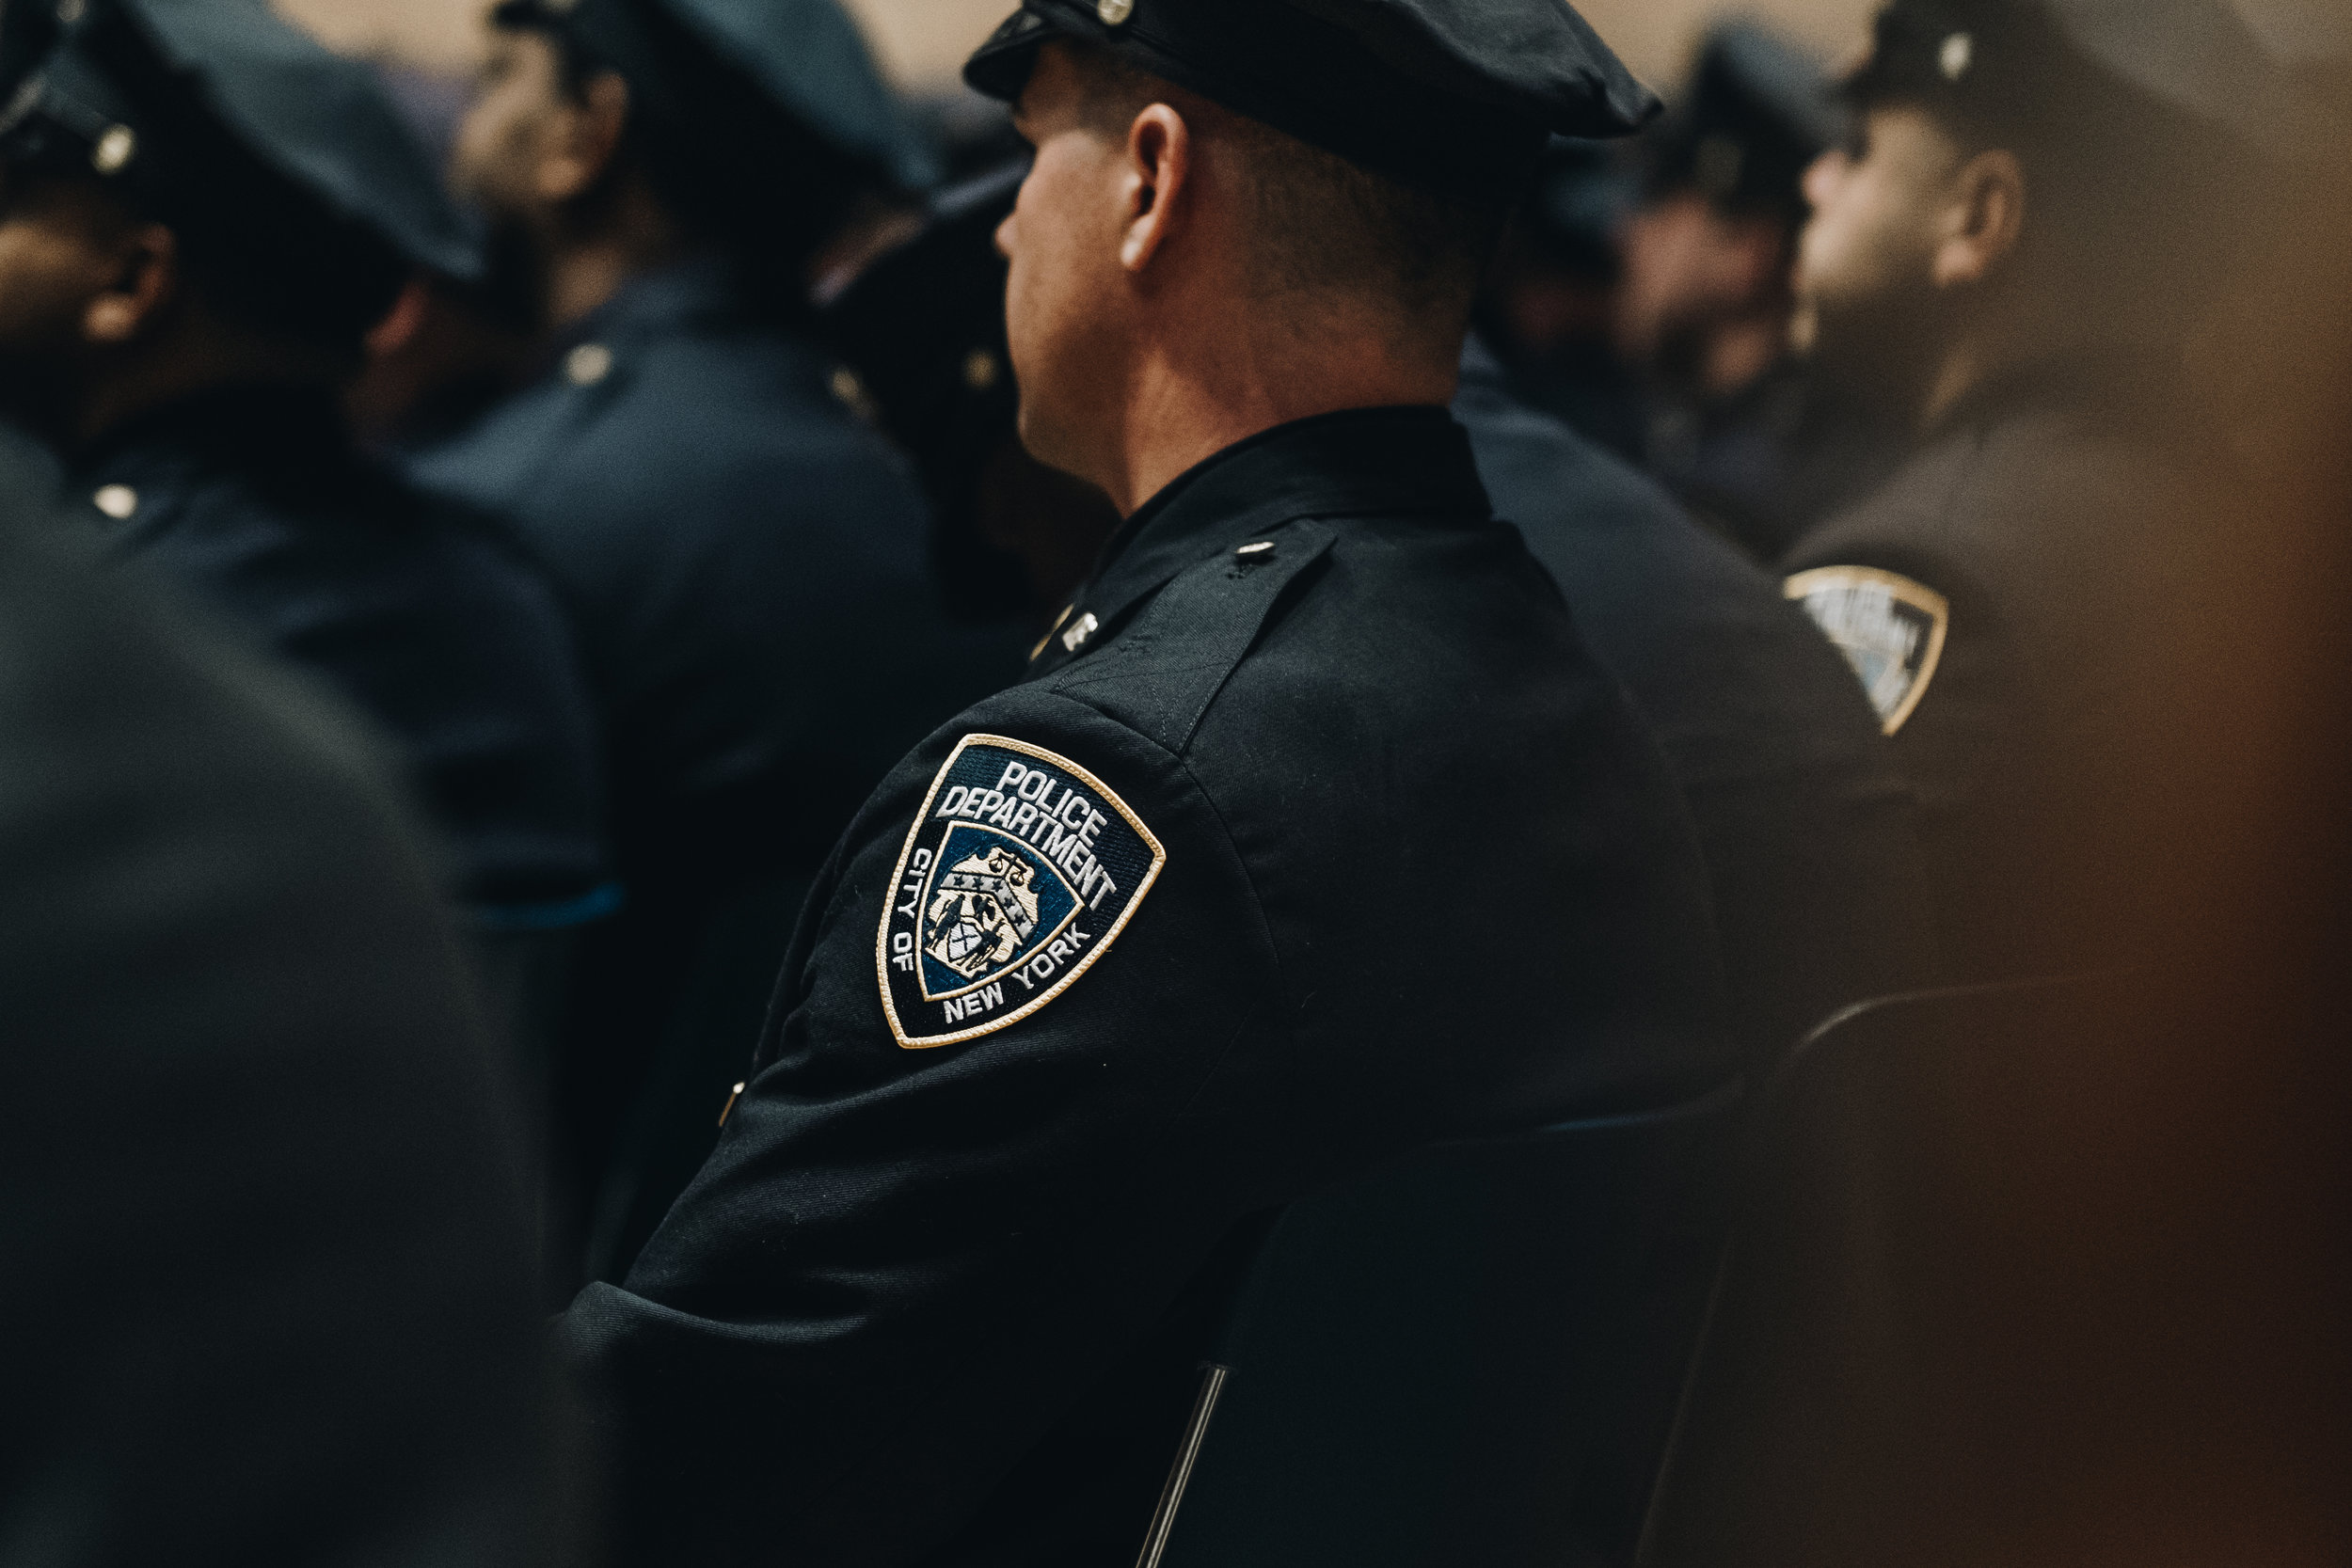 NYPD_Promotions-24.jpg